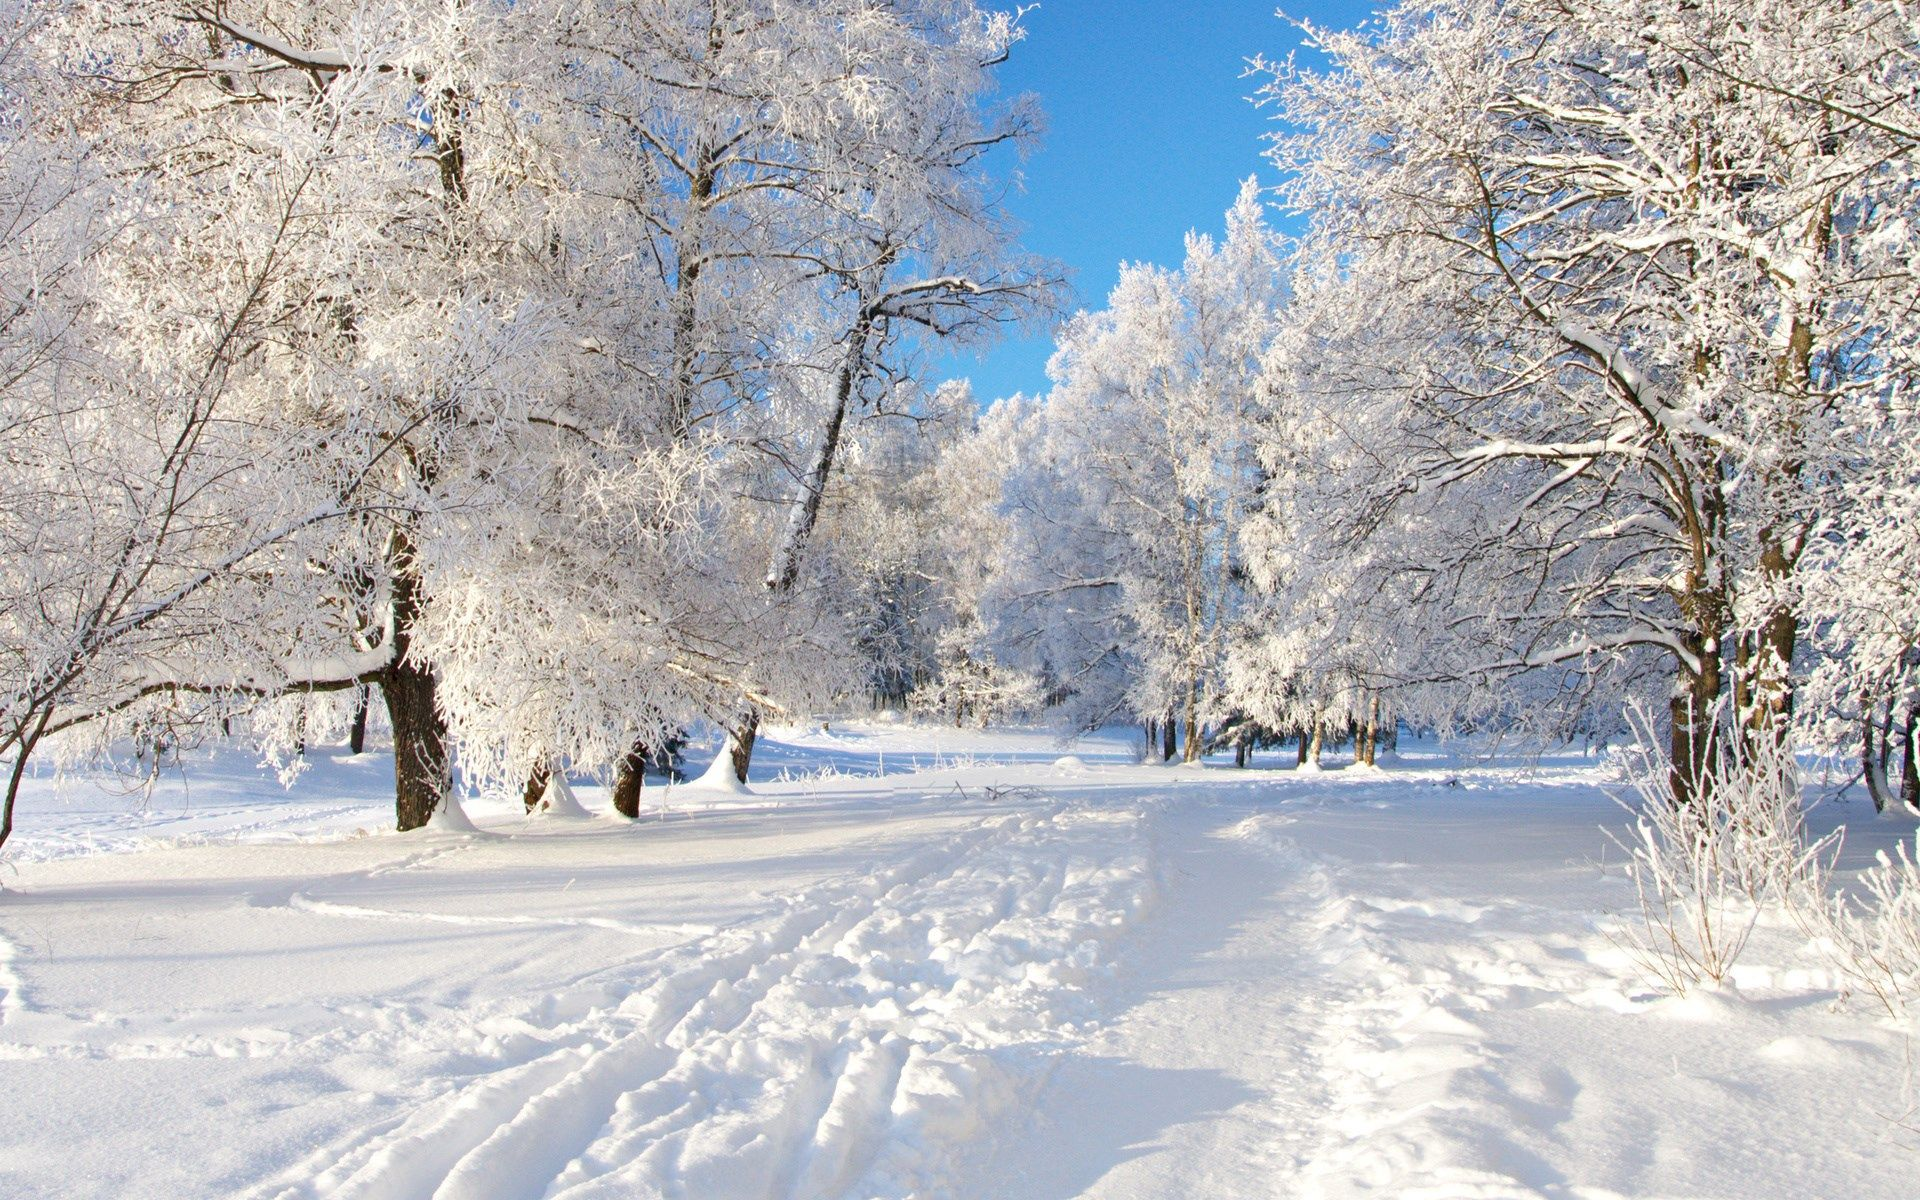 Hd Wallpaper Pc Nature 1920x1200 Winter Wonderland In